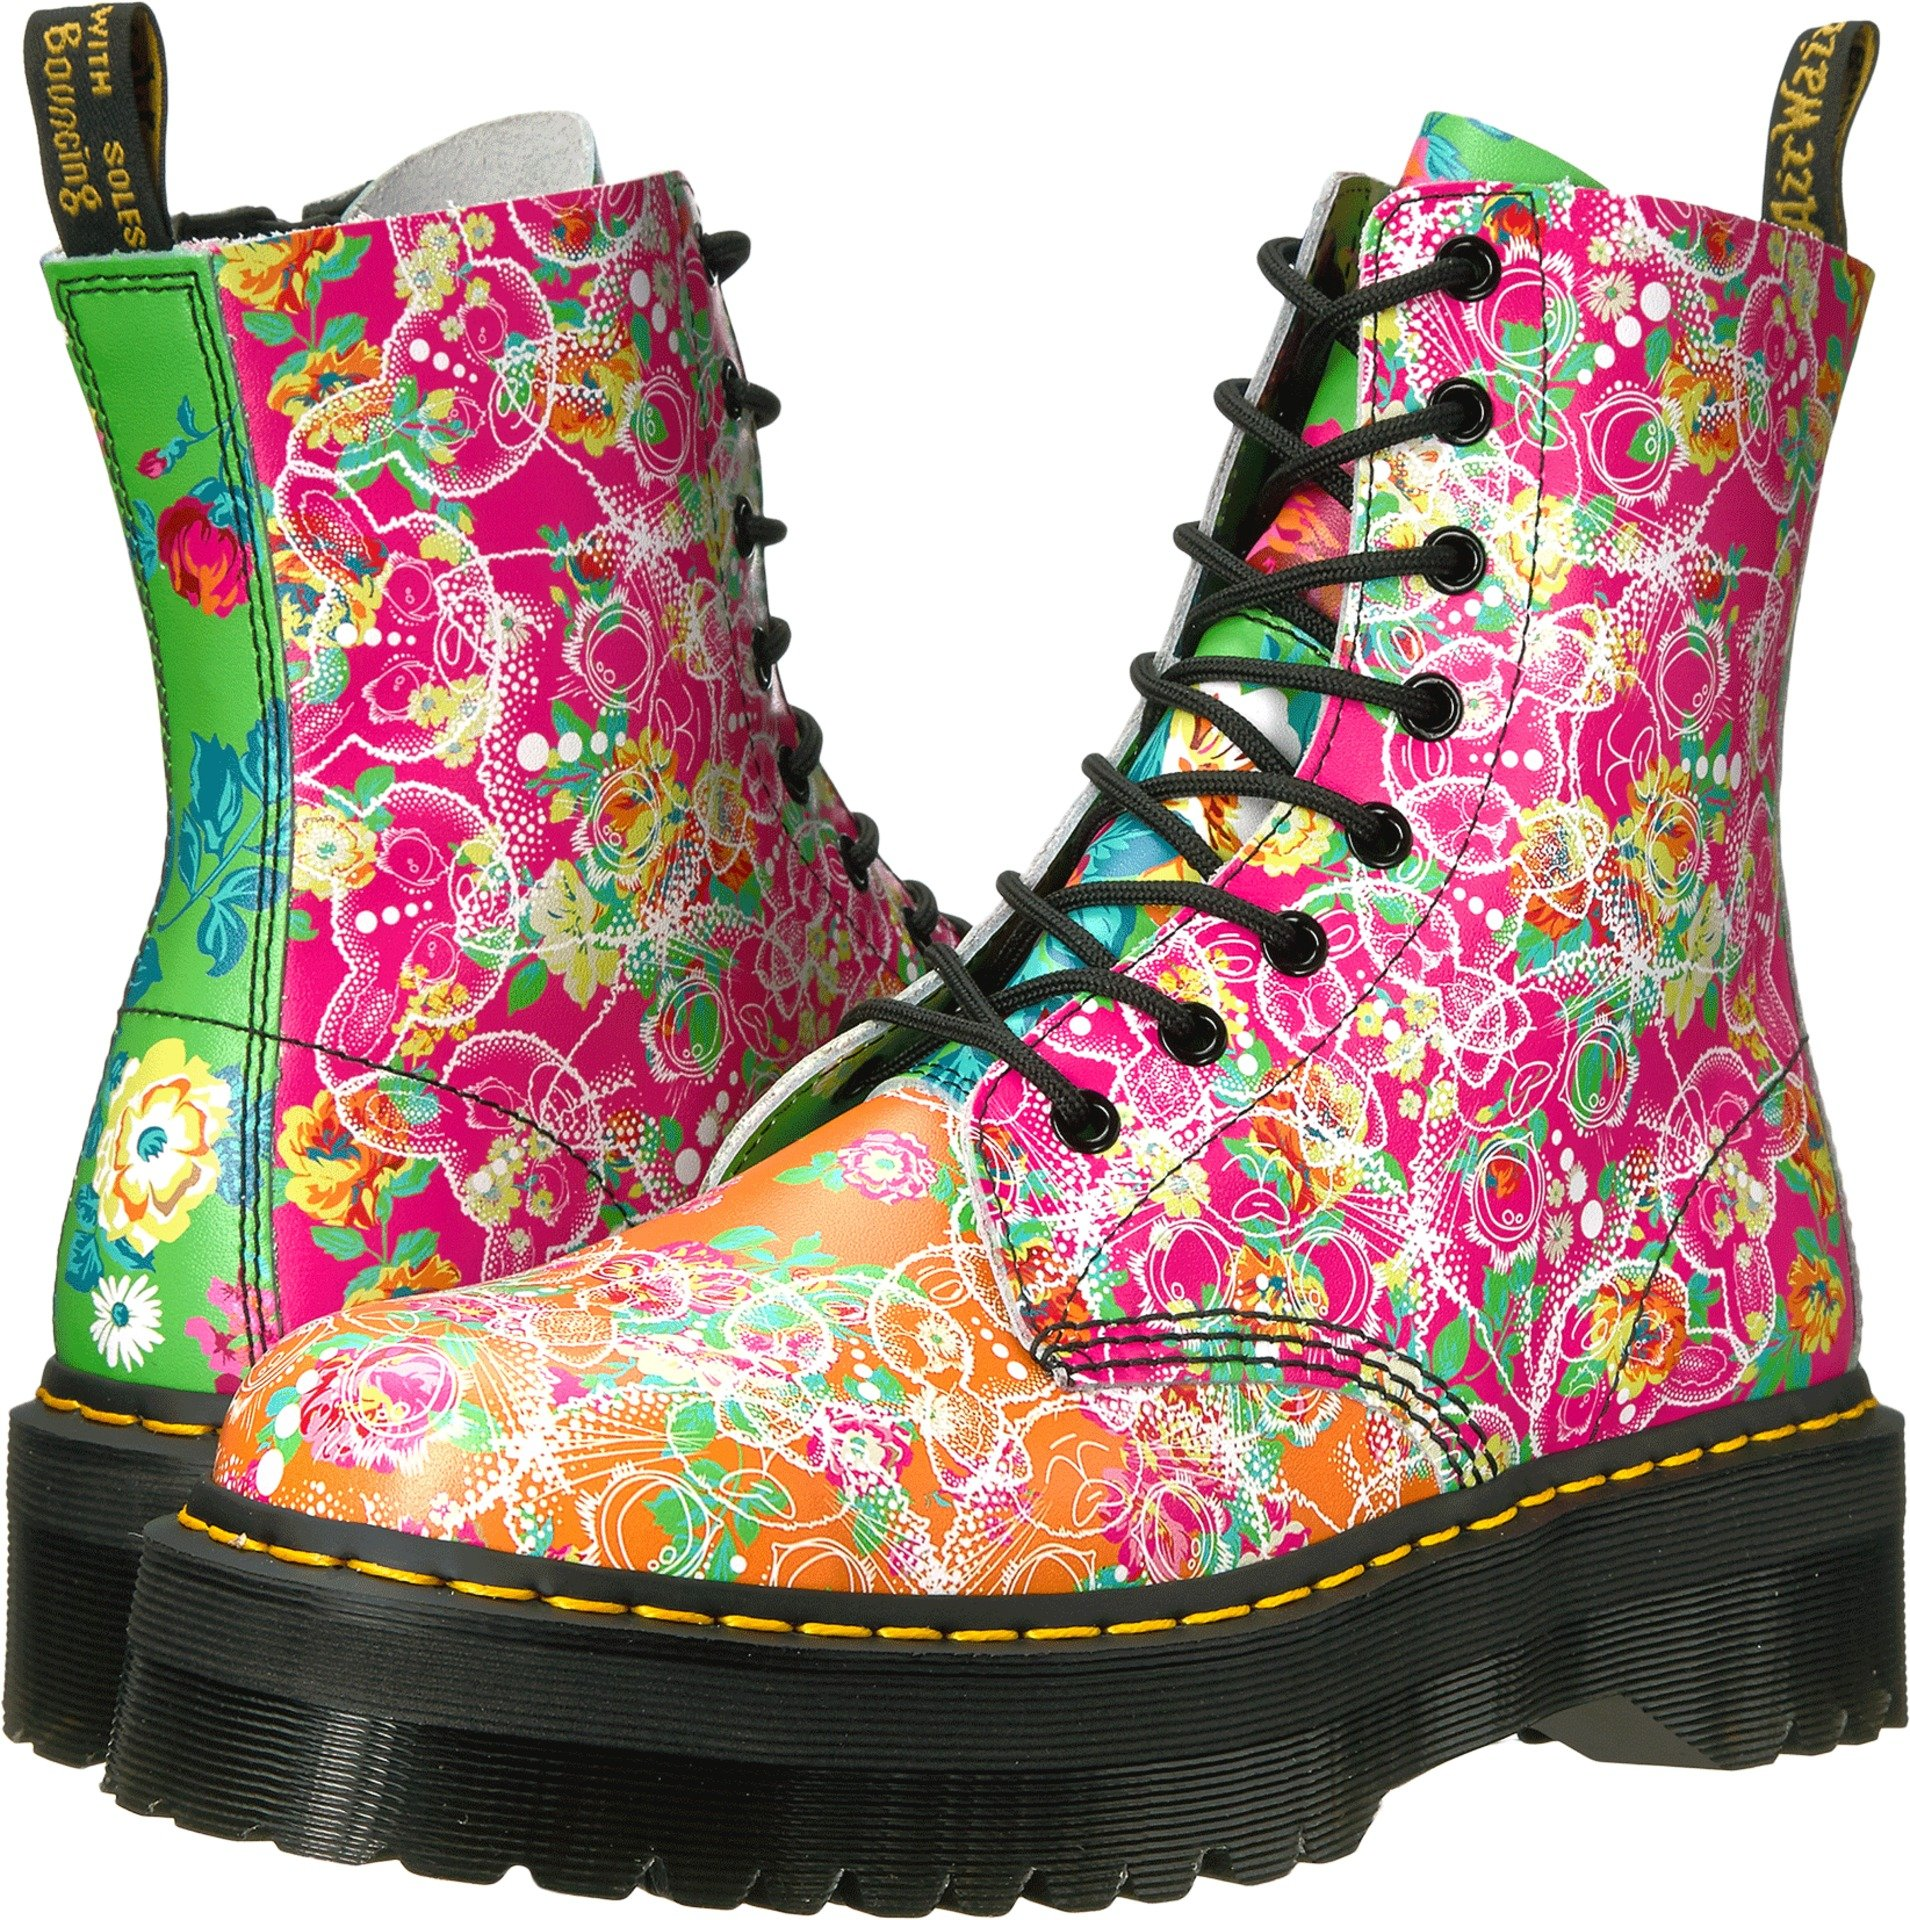 Dr. Martens Women's Jadon Daze Fashion Boot, Multi Daze, 4 Medium UK (6 US) by Dr. Martens